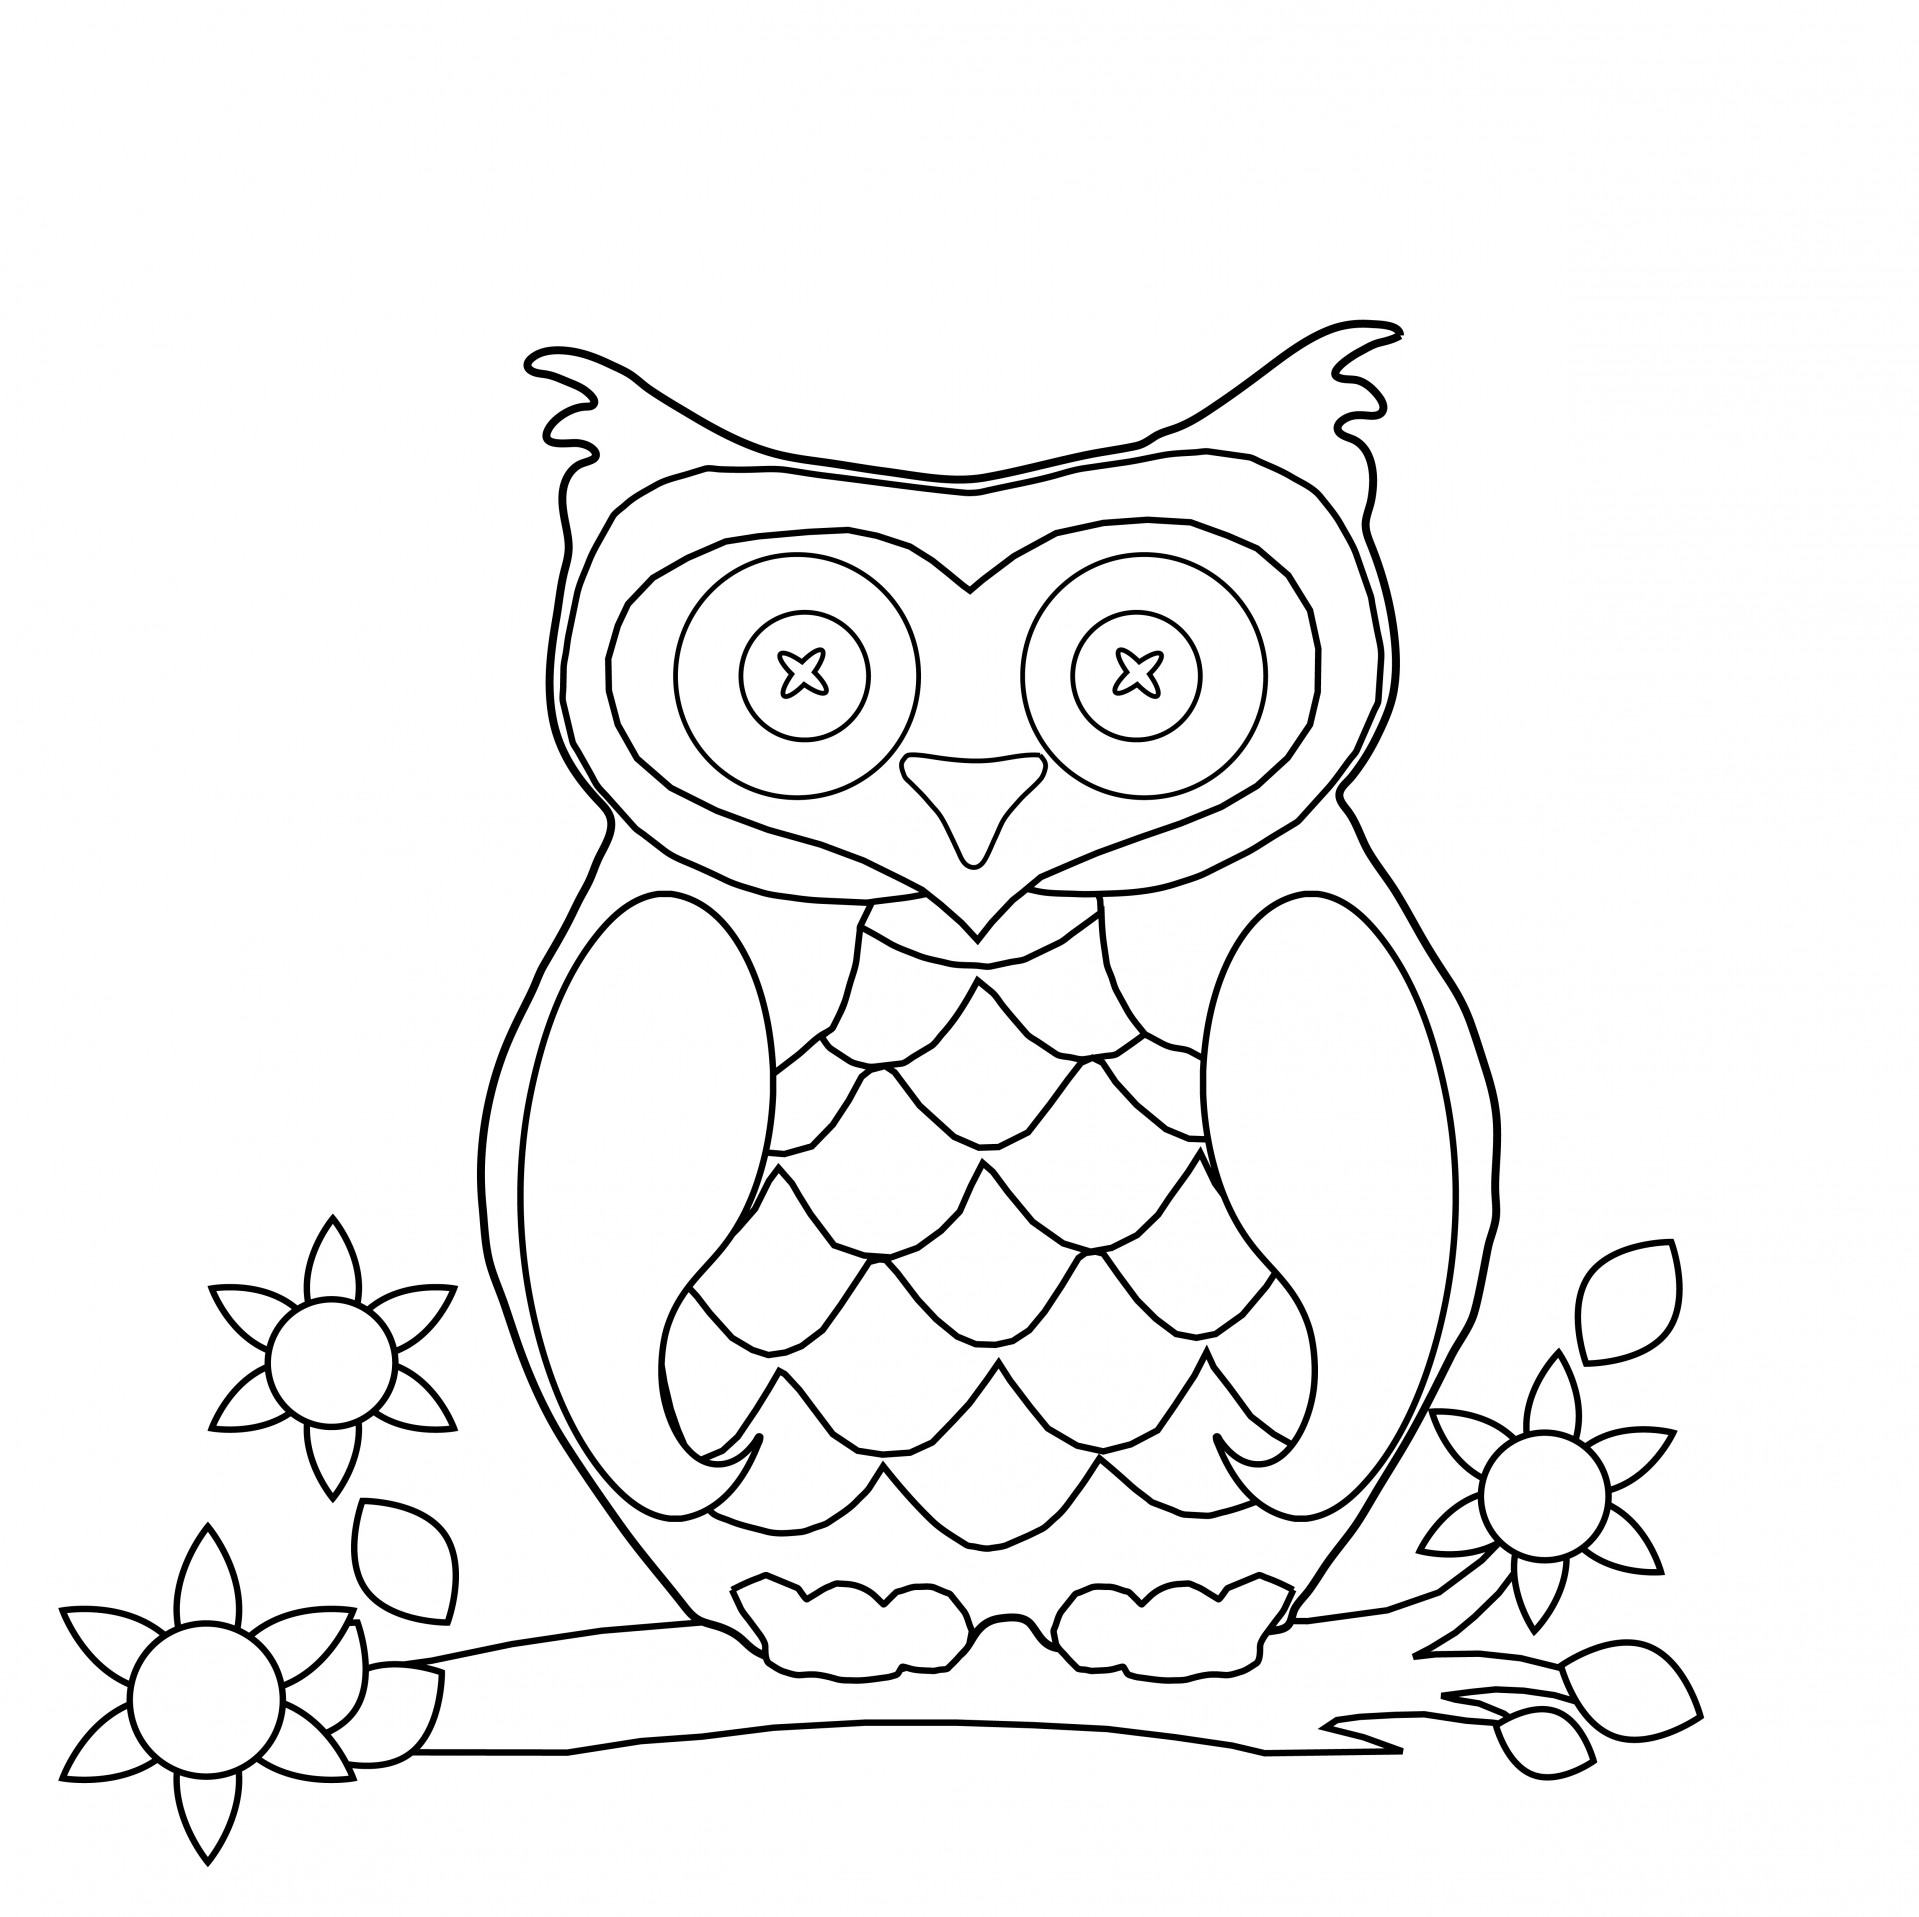 Page clipart coloring. Owl free stock photo